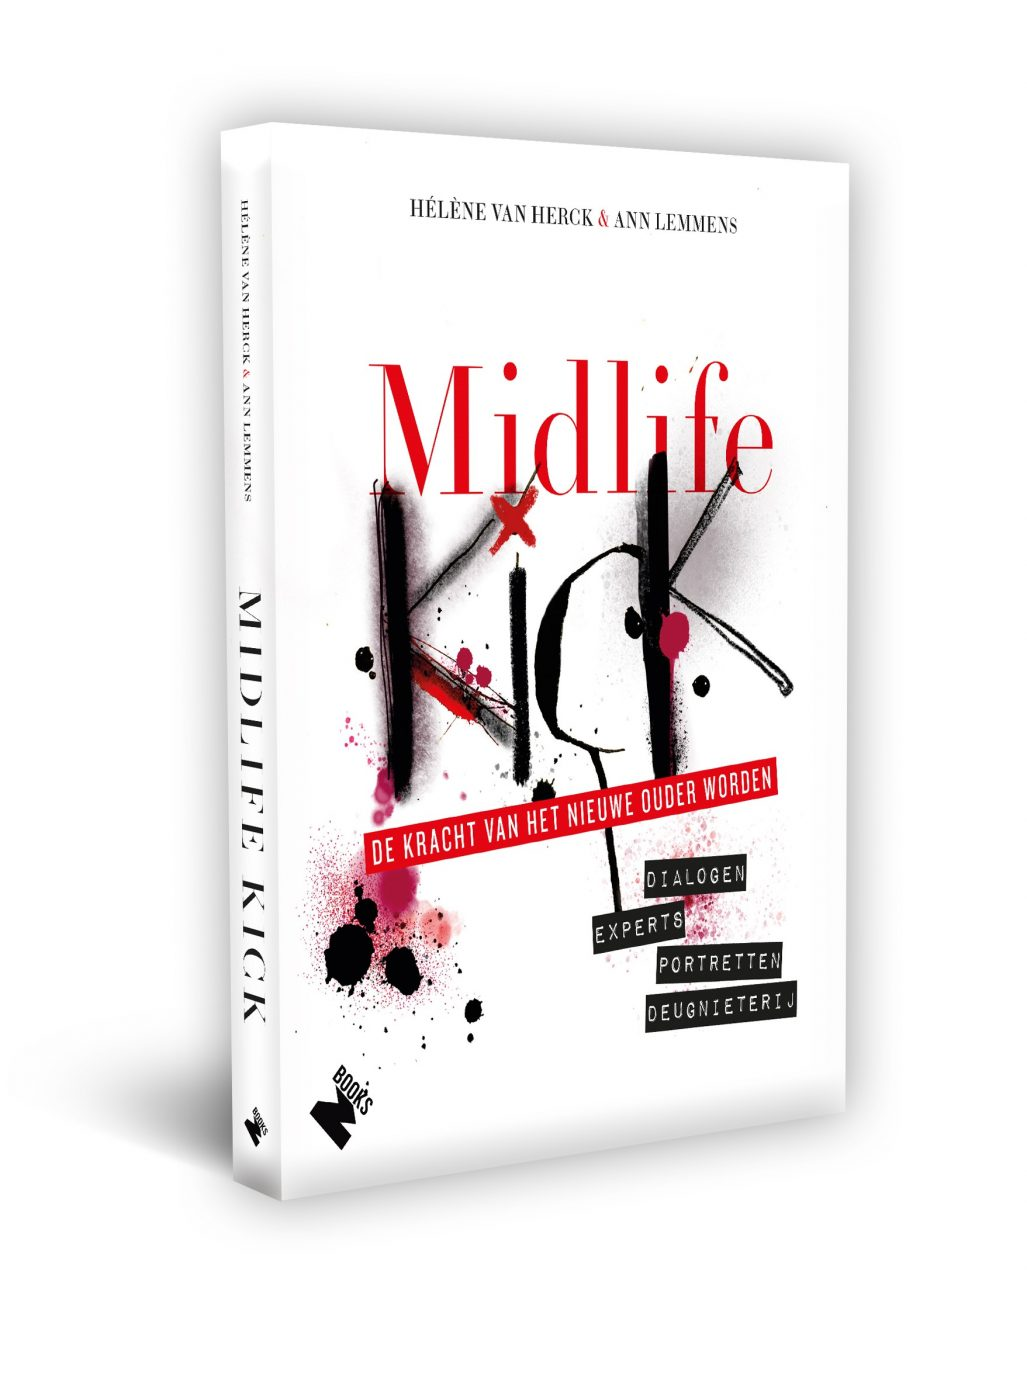 INFO OVER ONS BOEK MIDLIFE KICK